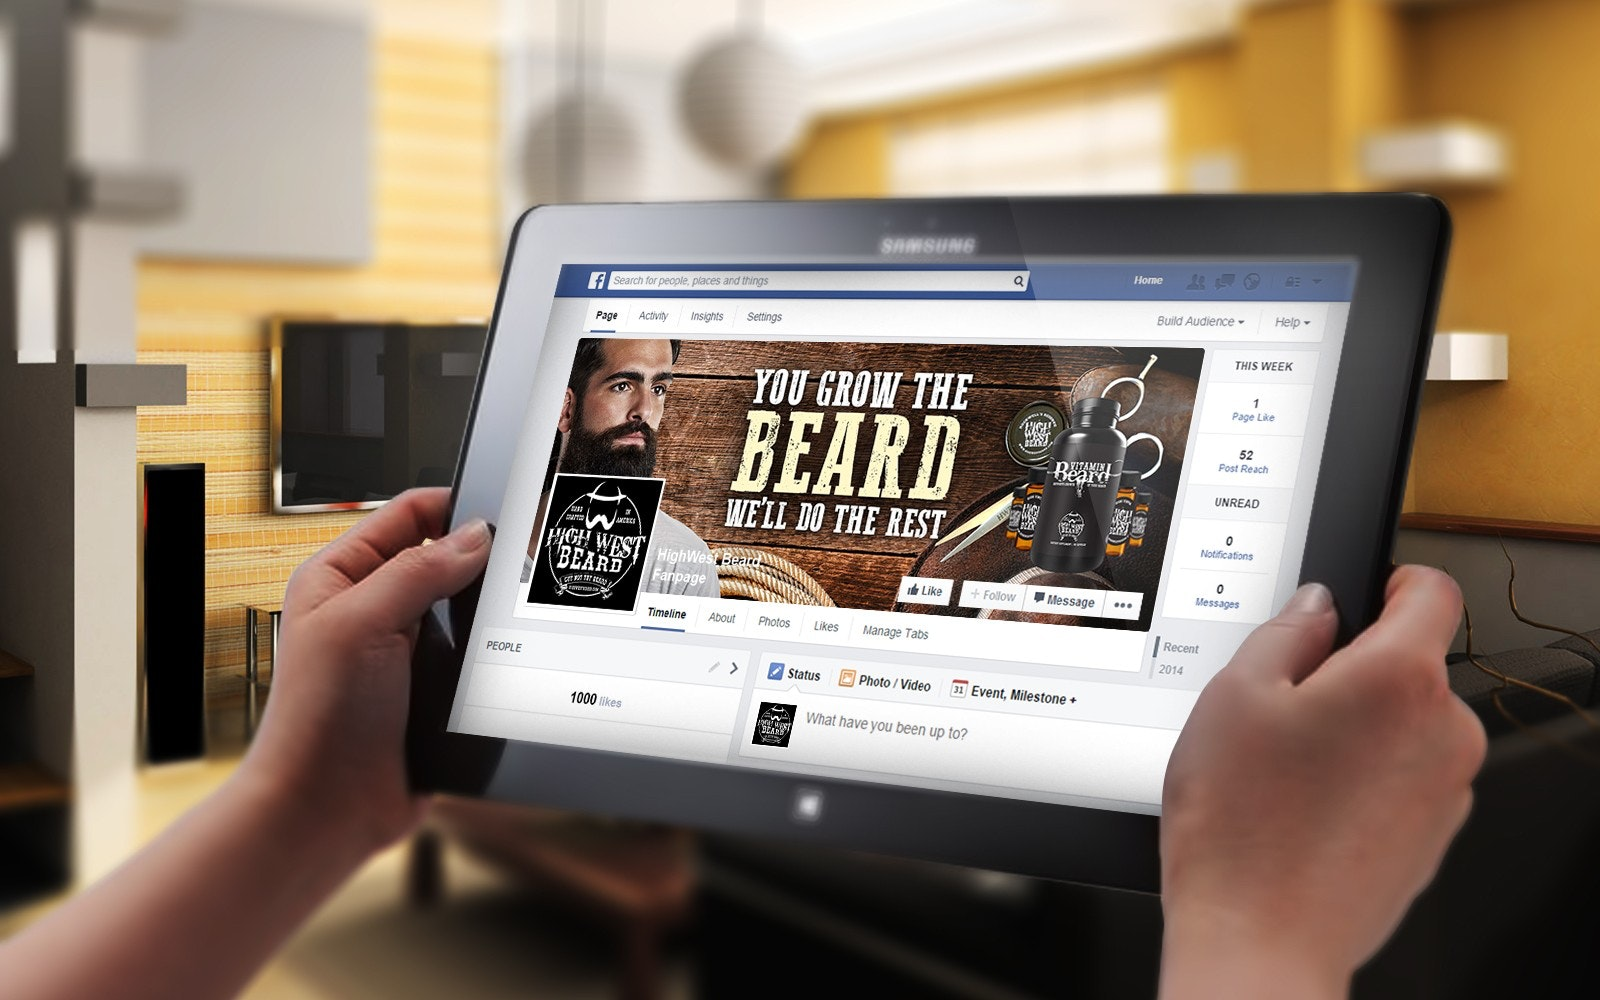 High West Beard Facebook profile and cover